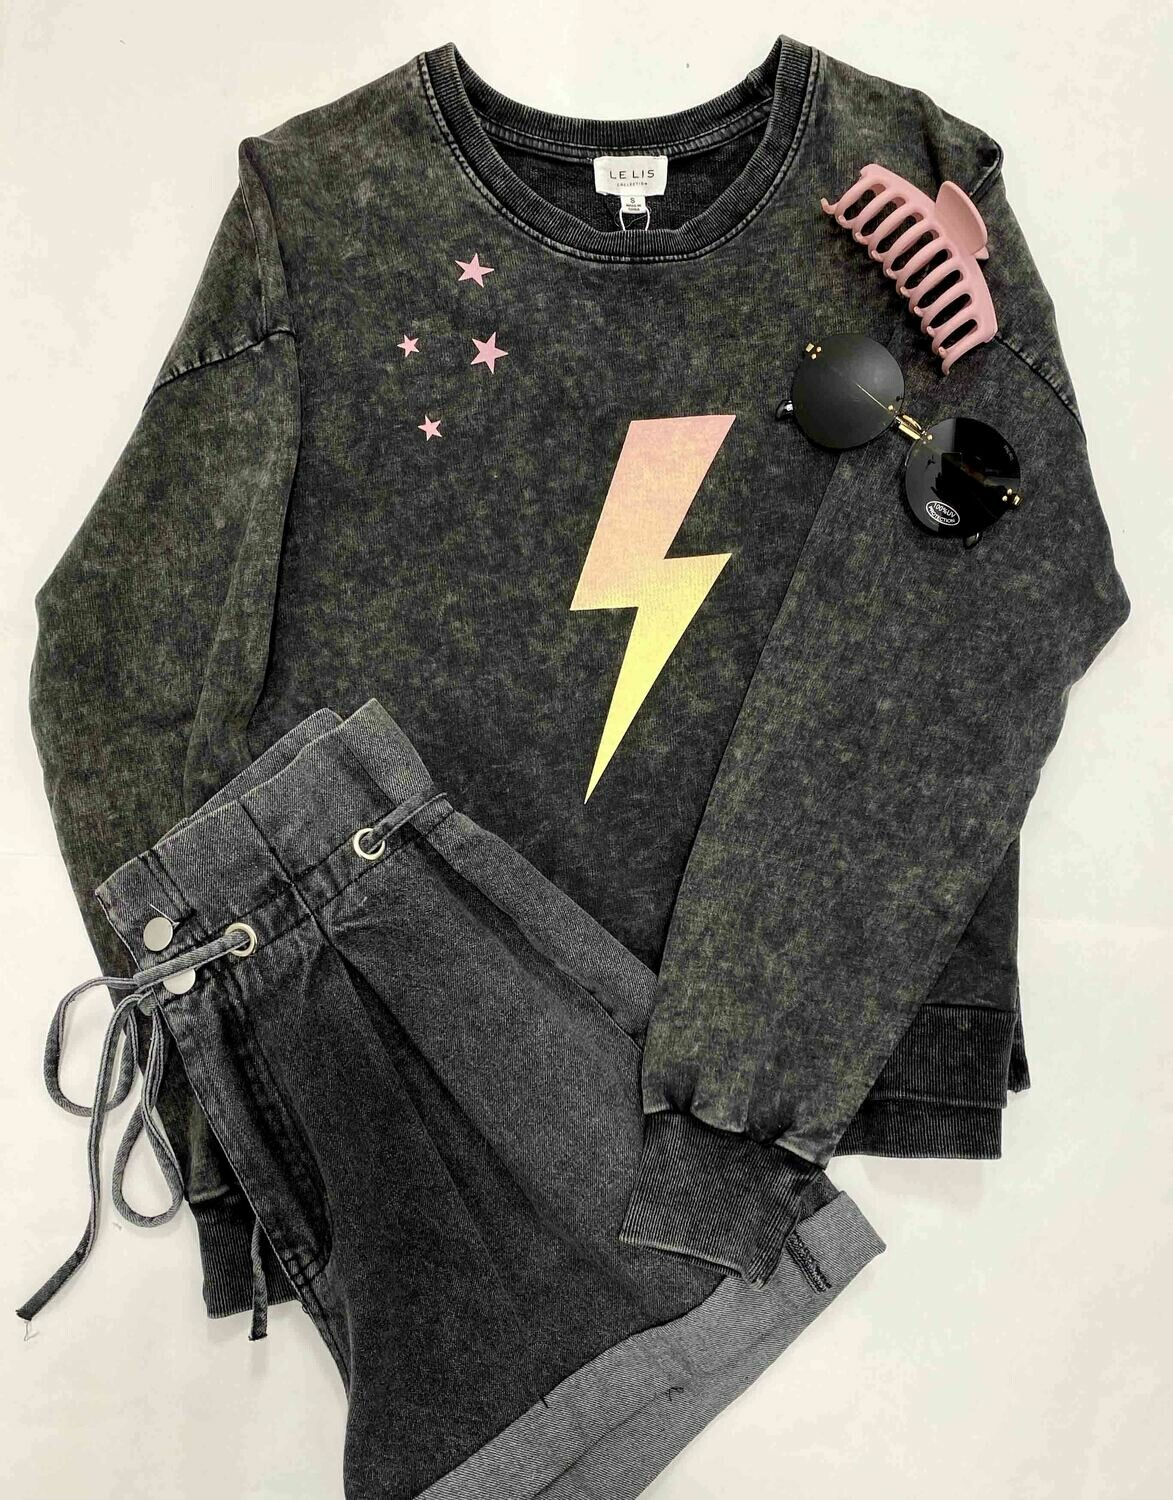 Le Lis Lightening Washed Black Sweatshirt